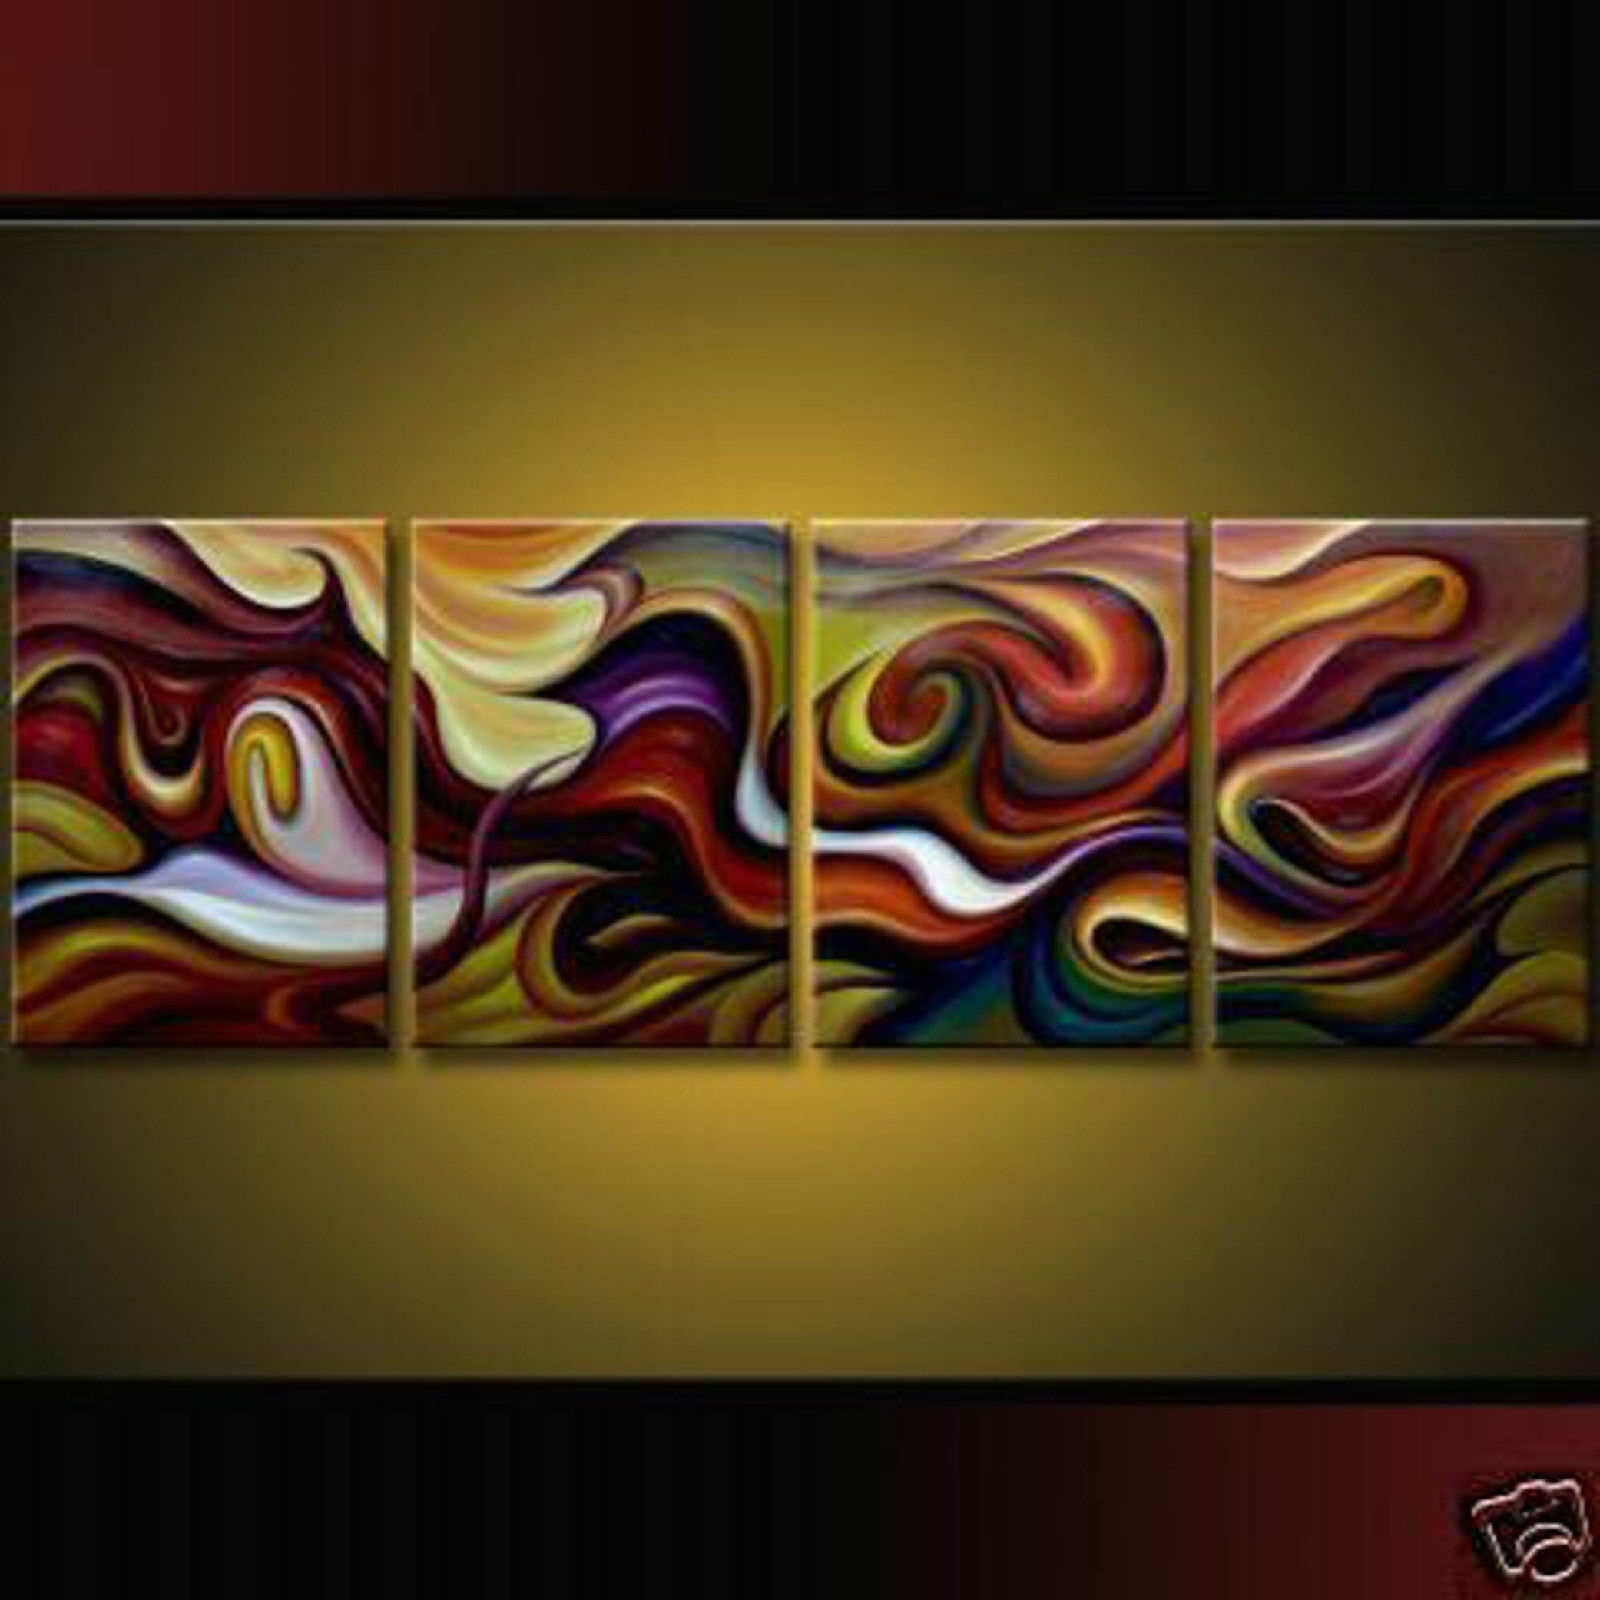 Piece Modern Abstract Huge Art Oil Painting Canvas Wall On Modern Pertaining To Most Recently Released Oil Paintings Canvas Wall Art (View 7 of 15)